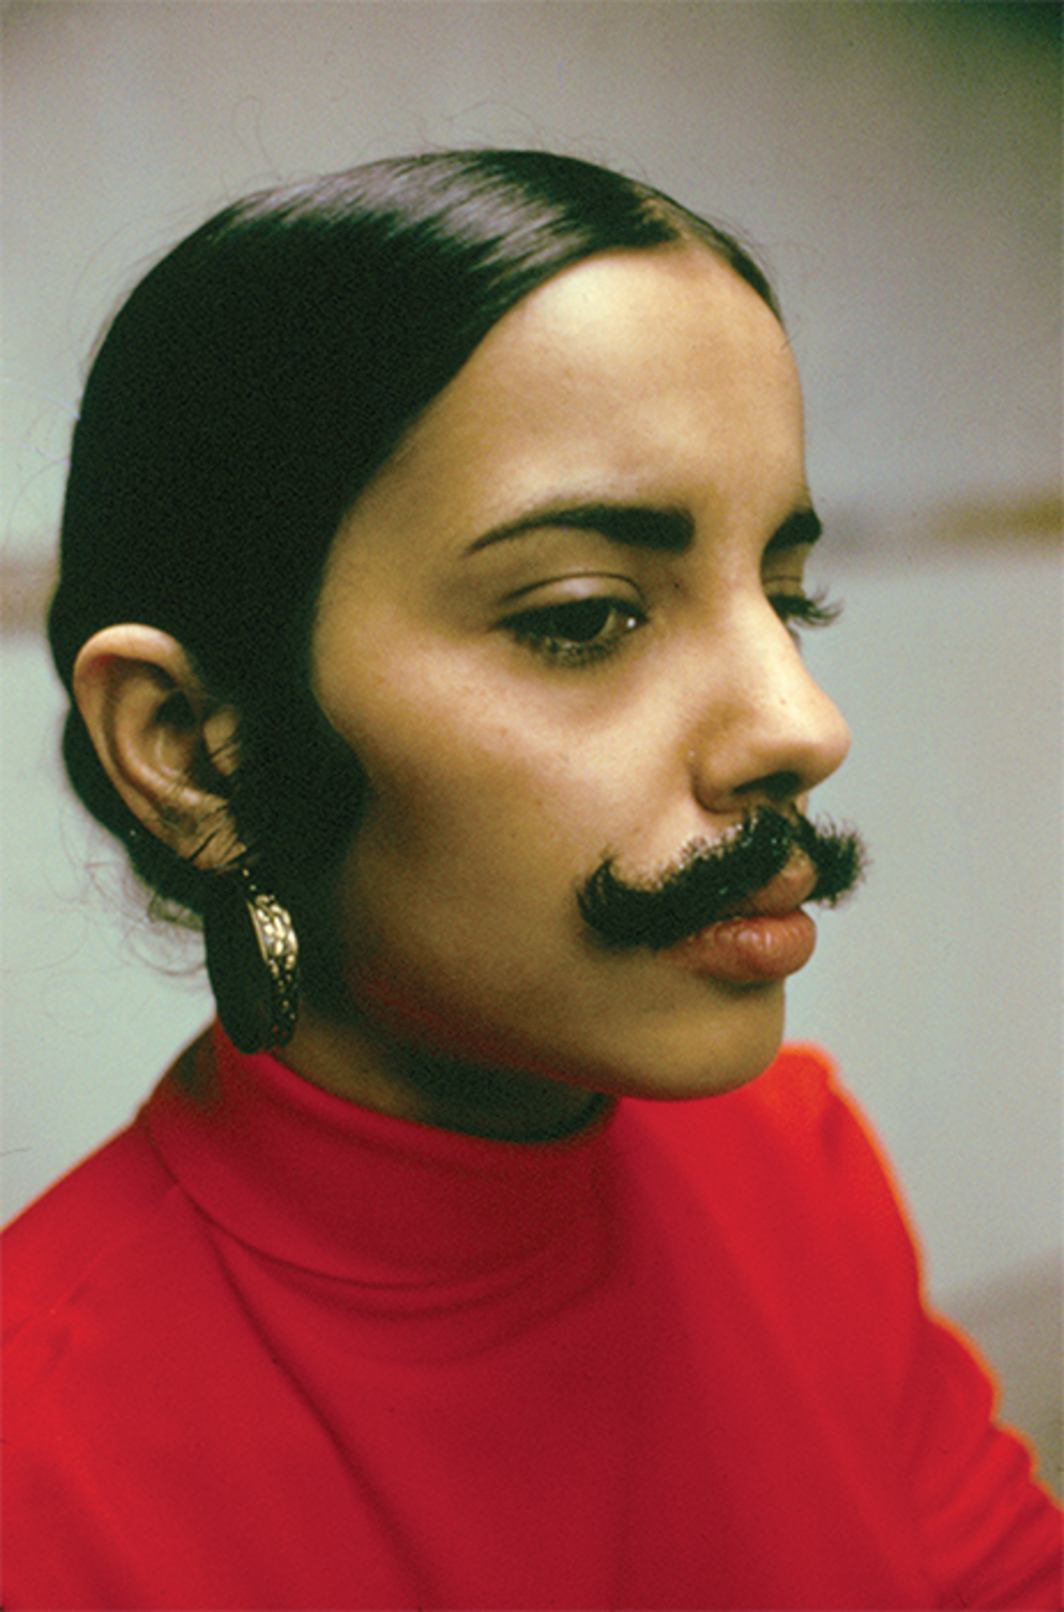 "Ana Mendieta, Untitled (Facial Hair Transplants) (detail), 1972, seven C-prints, each 16 × 20"". From the suite Untitled (Facial Hair Transplants), 1972. From ""artevida,"" 2014. © The Estate of Ana Mendieta Collection, L.L.C."